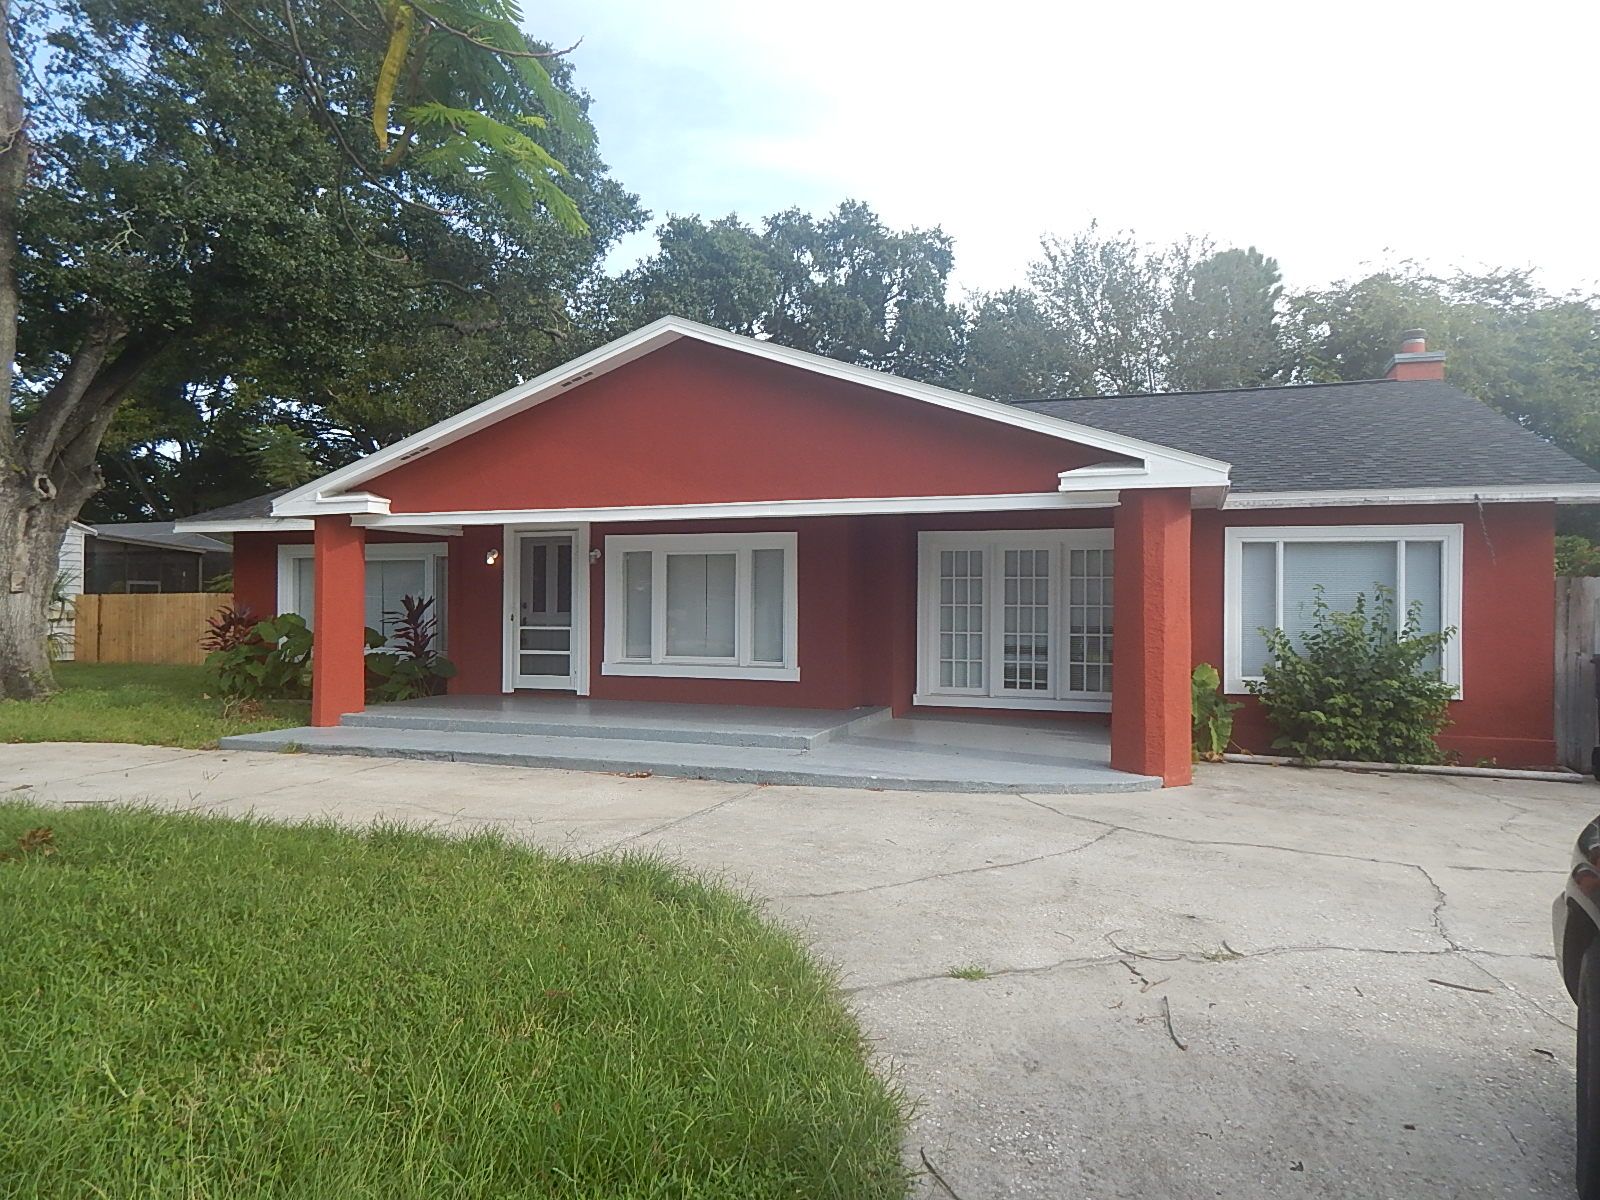 Photo of 3811 W El Prado Boulevard, Tampa, FL, 33629